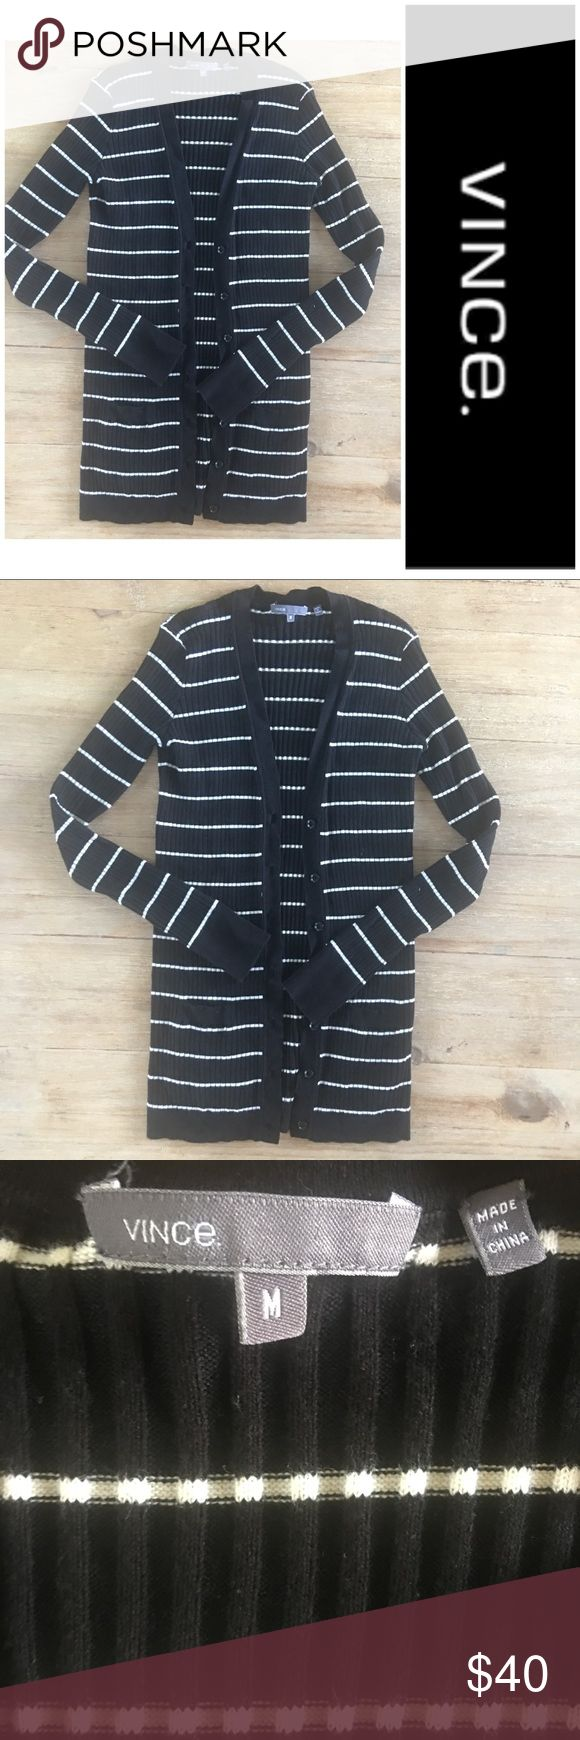 "Vince long black white striped cardigan sweater Vince ribbed black and white striped cardigan sweater.   Approx 28"" long.    100% cotton.  So versatile.   Super comfy and in perfect condition. Vince Tops"